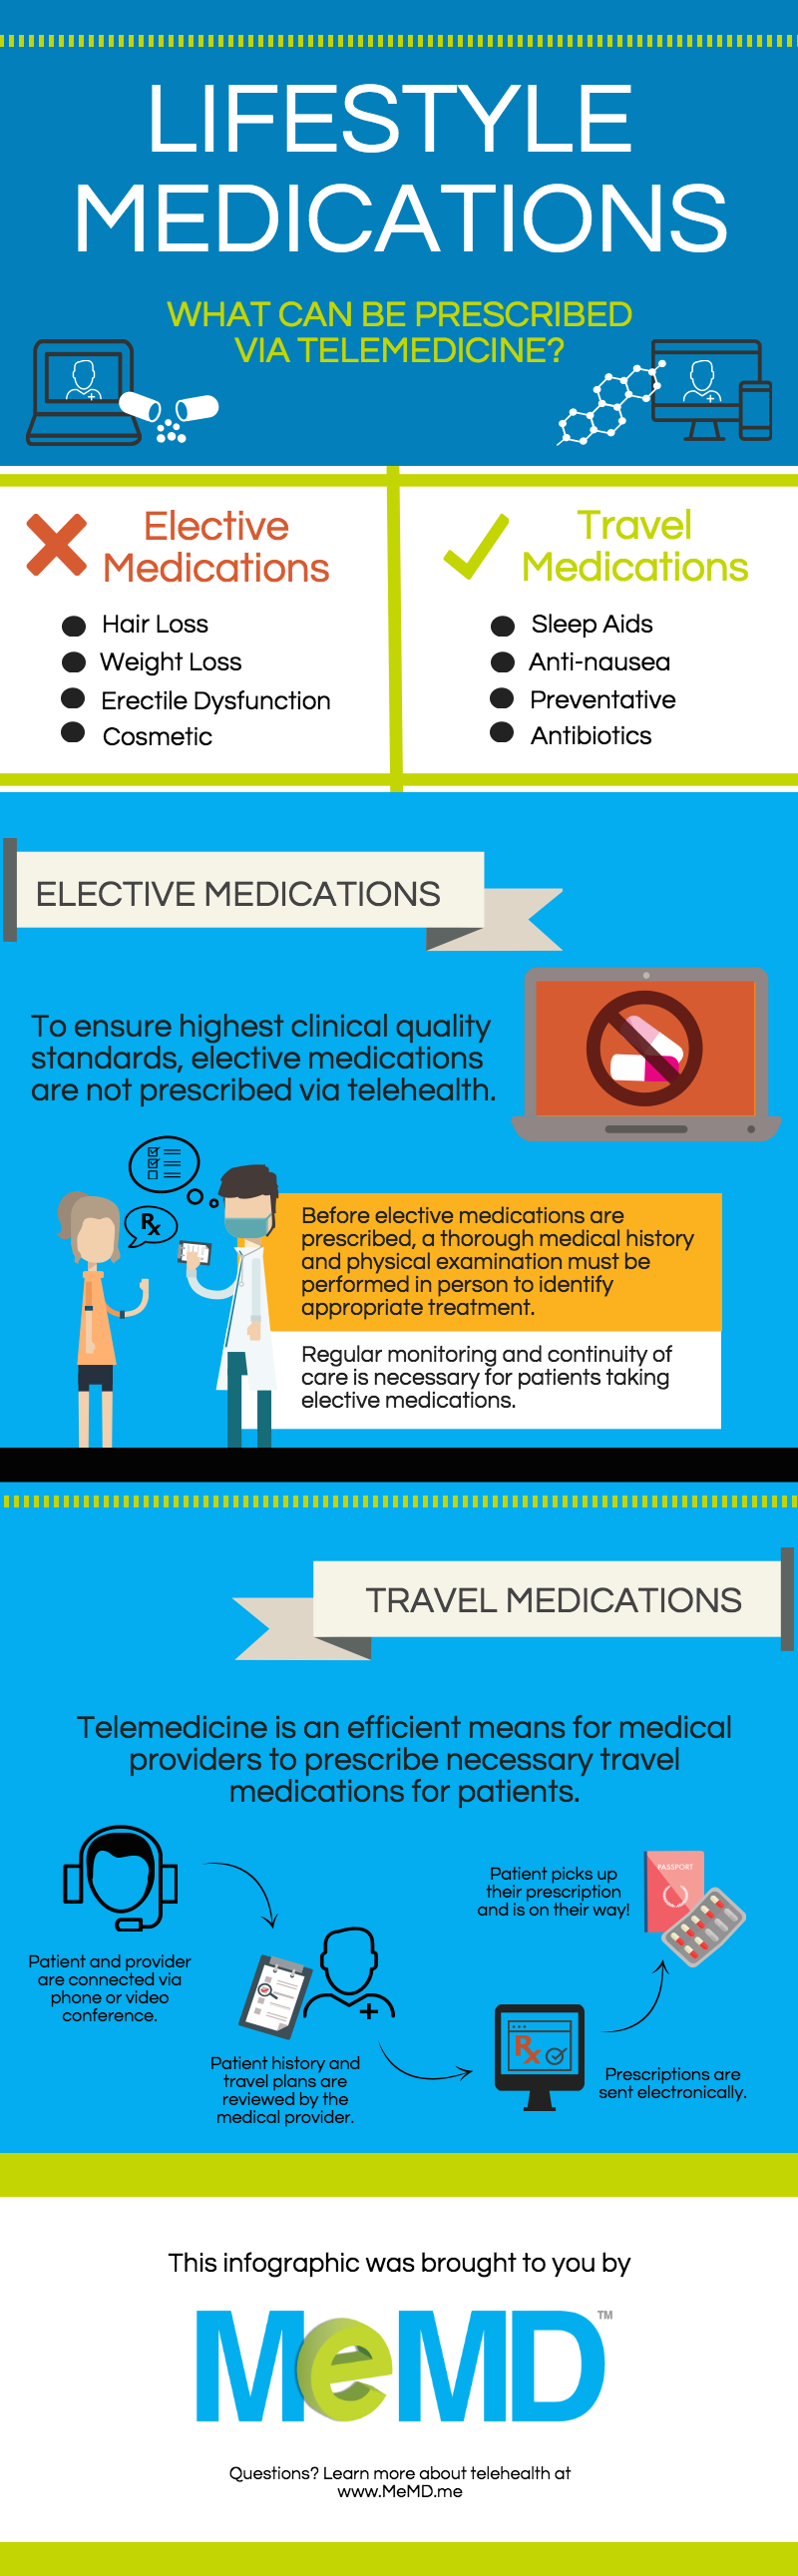 blog-infographic-telemedicine-medications-lifestyle